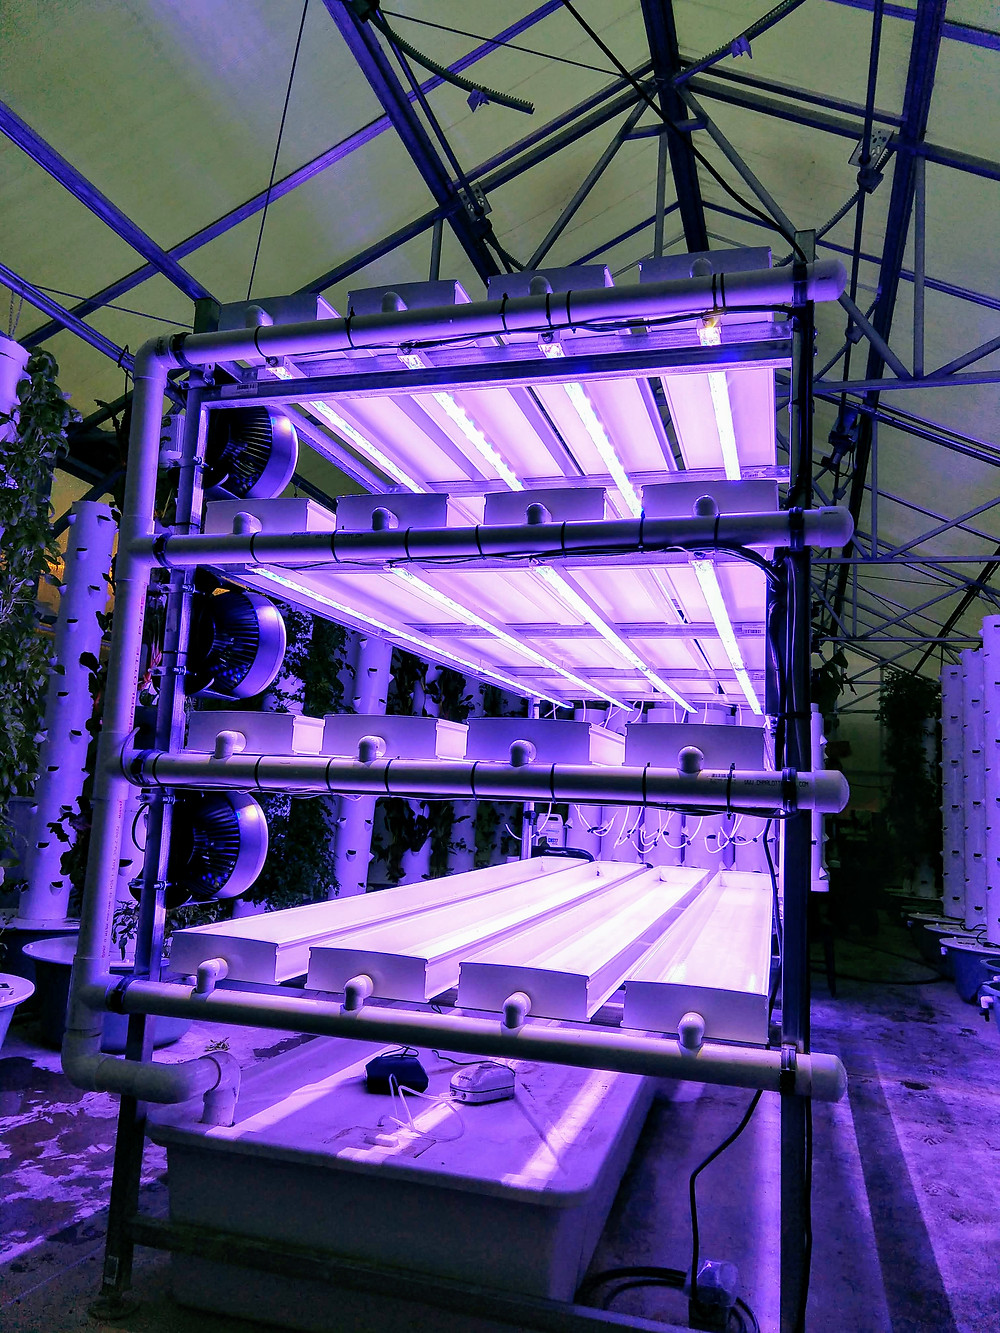 Nutrient film hydroponic shelf unit with freshly installed blue LED grow lights.